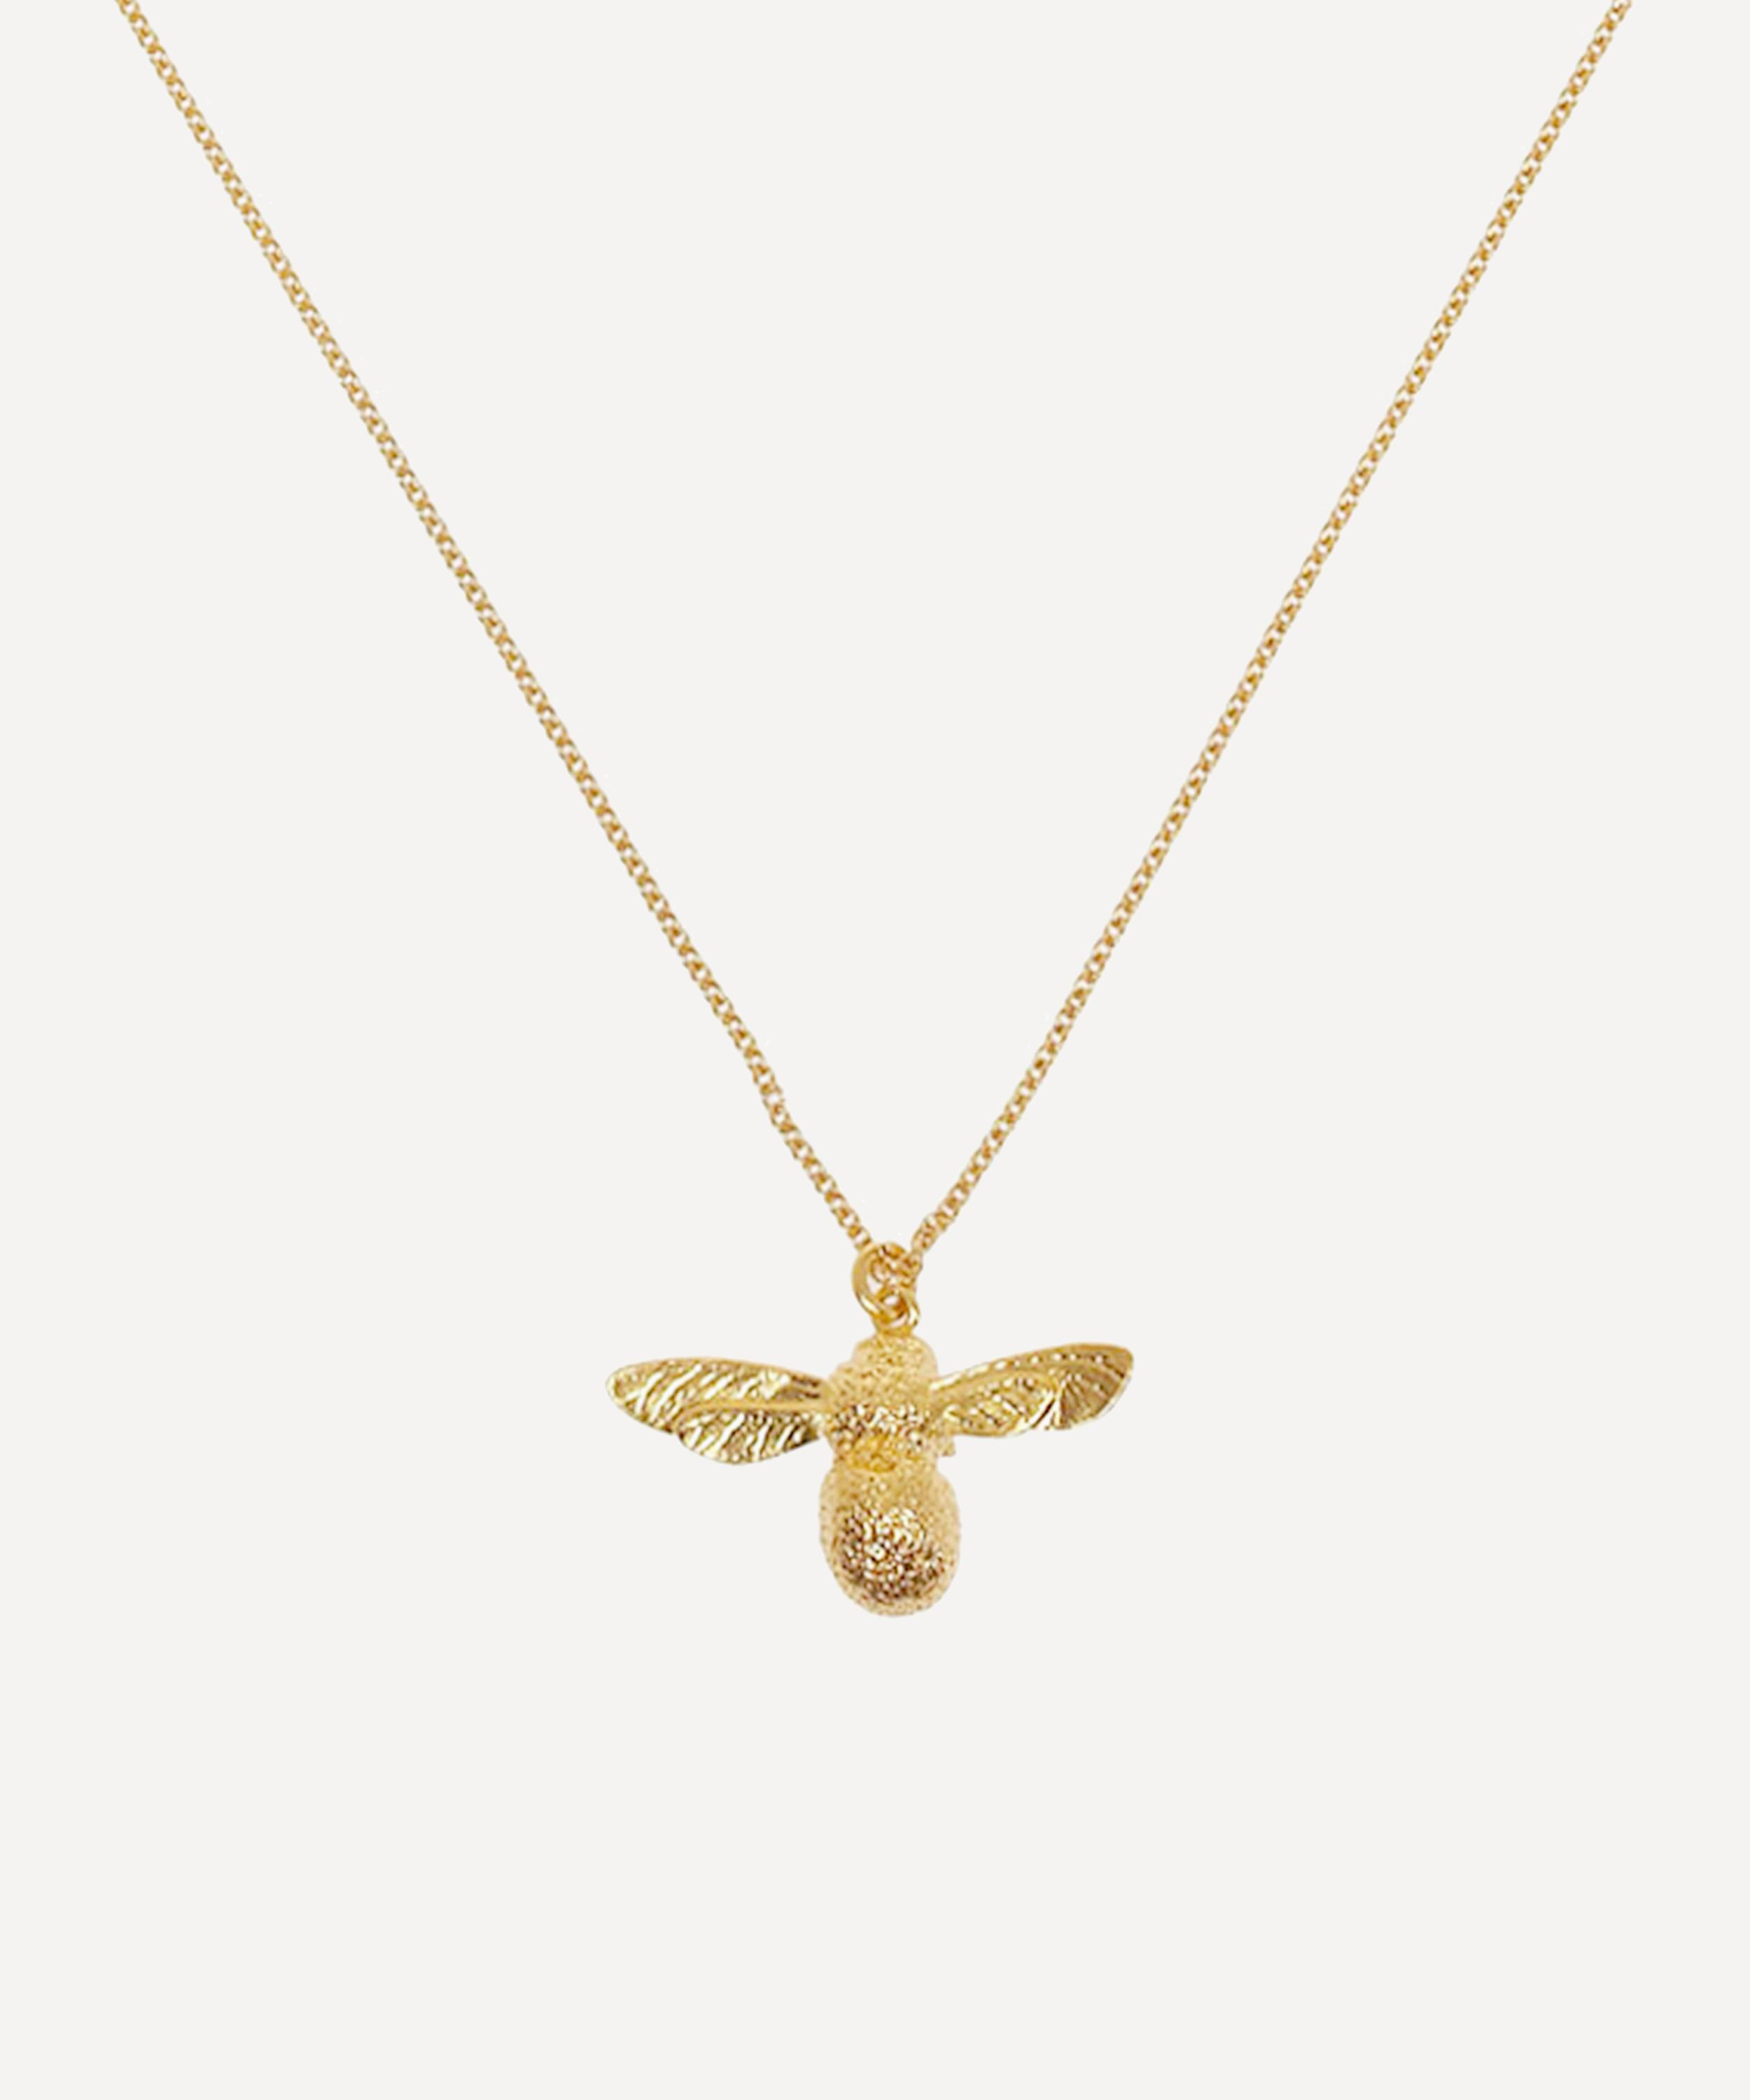 e39f07e1b37c7 Gold-Plated Baby Bee Necklace